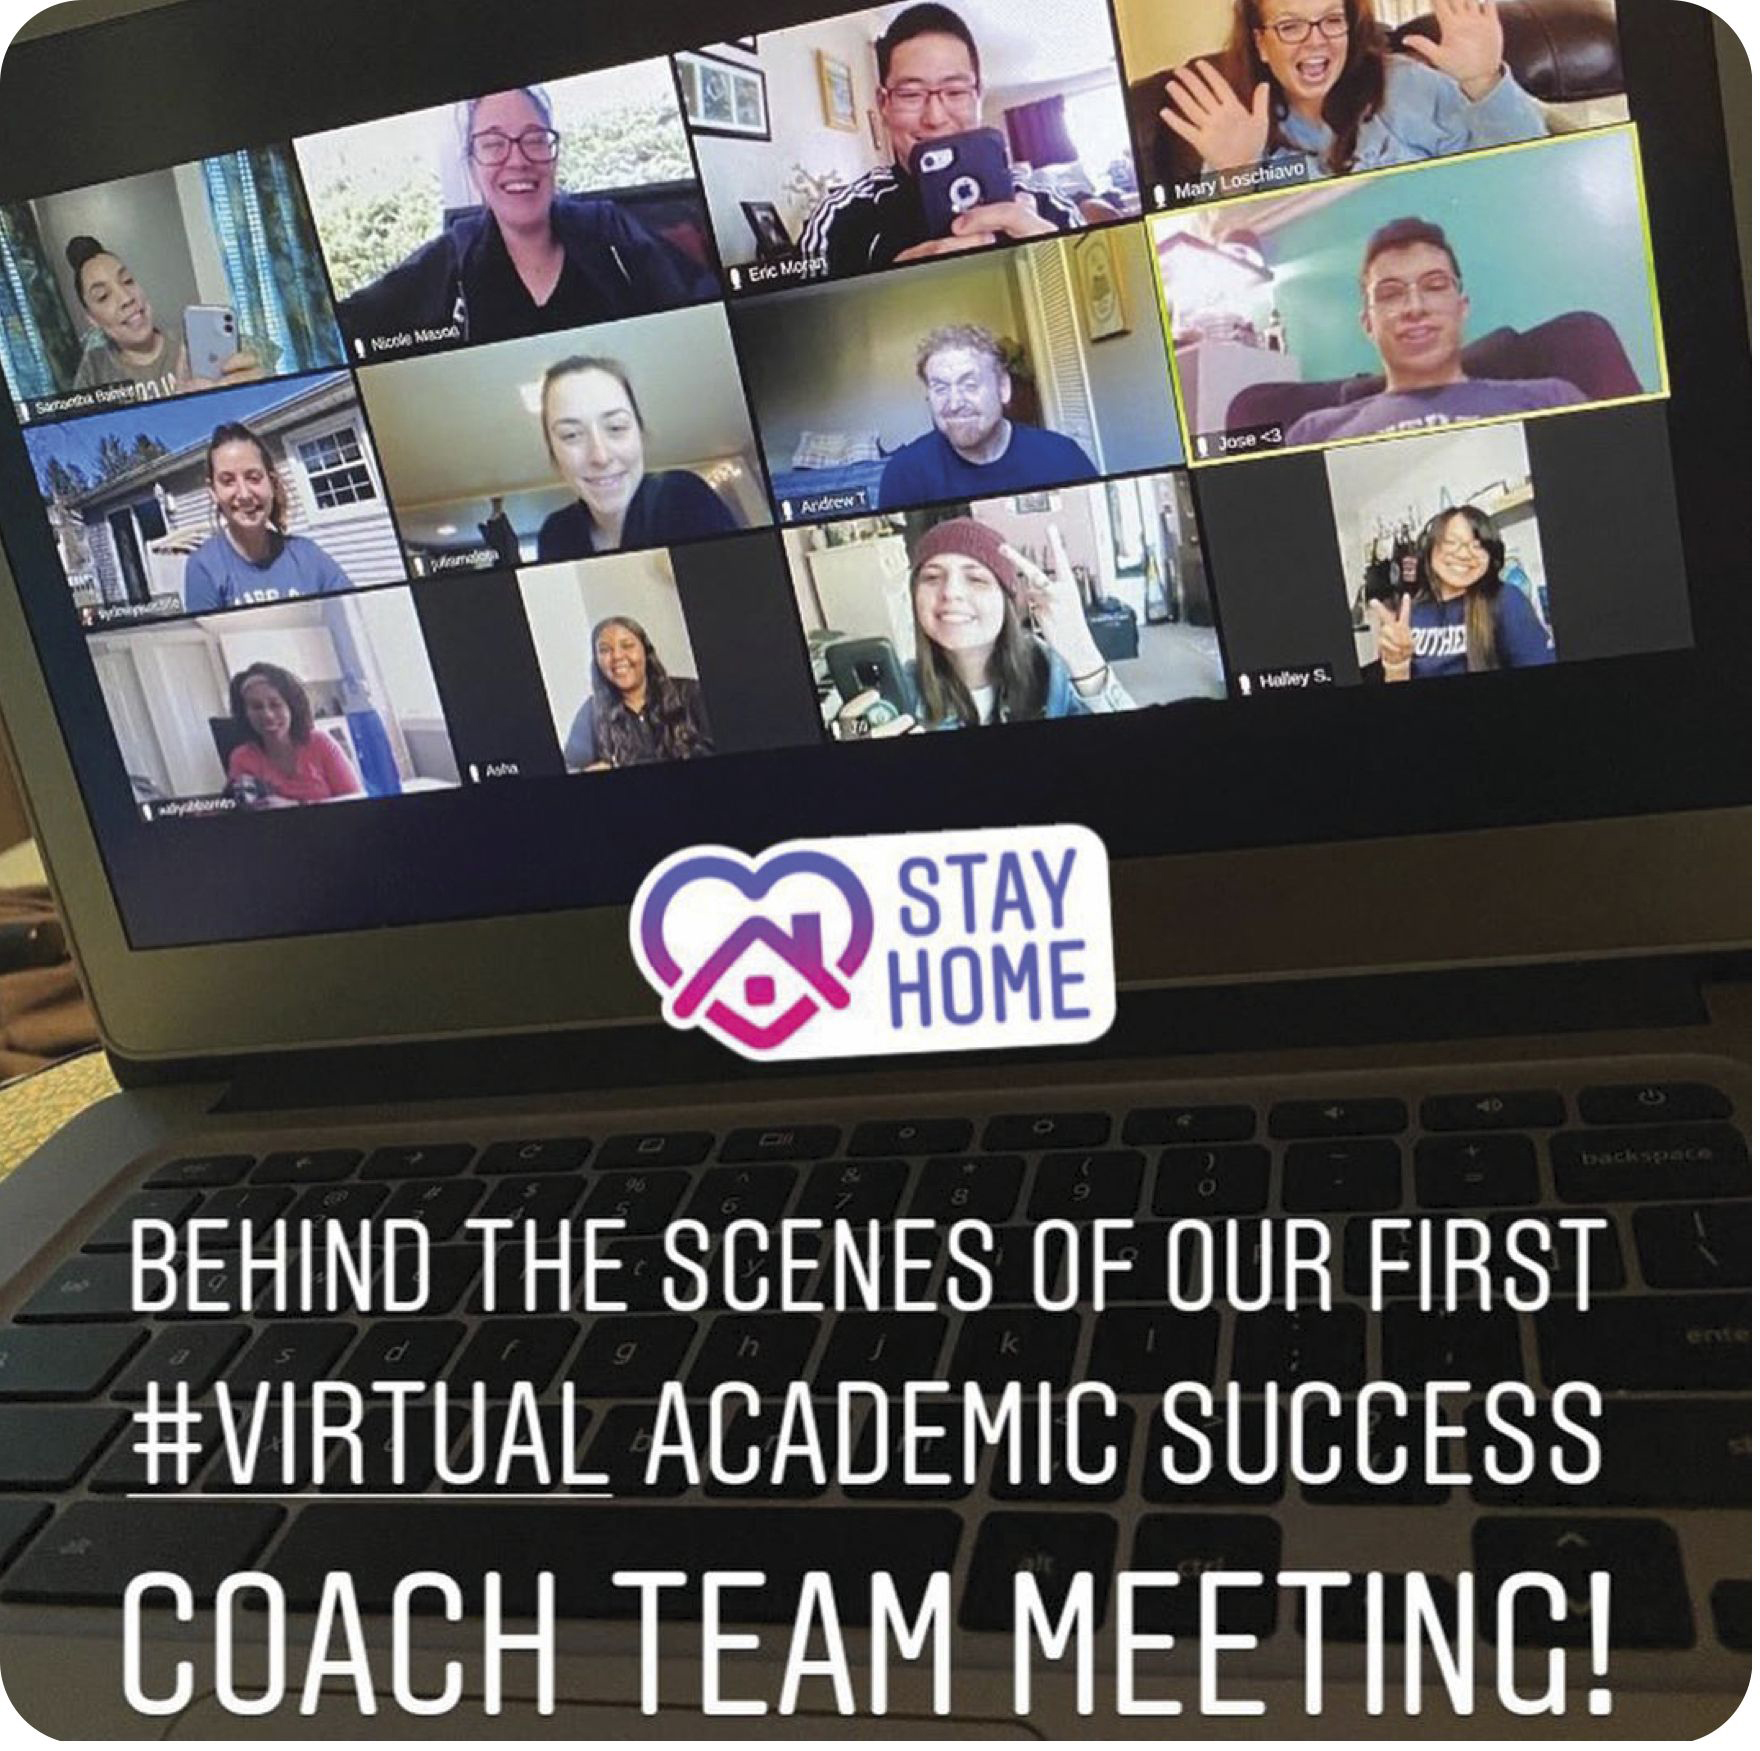 SCSU Academic Success Center has Coach Team Meeting online